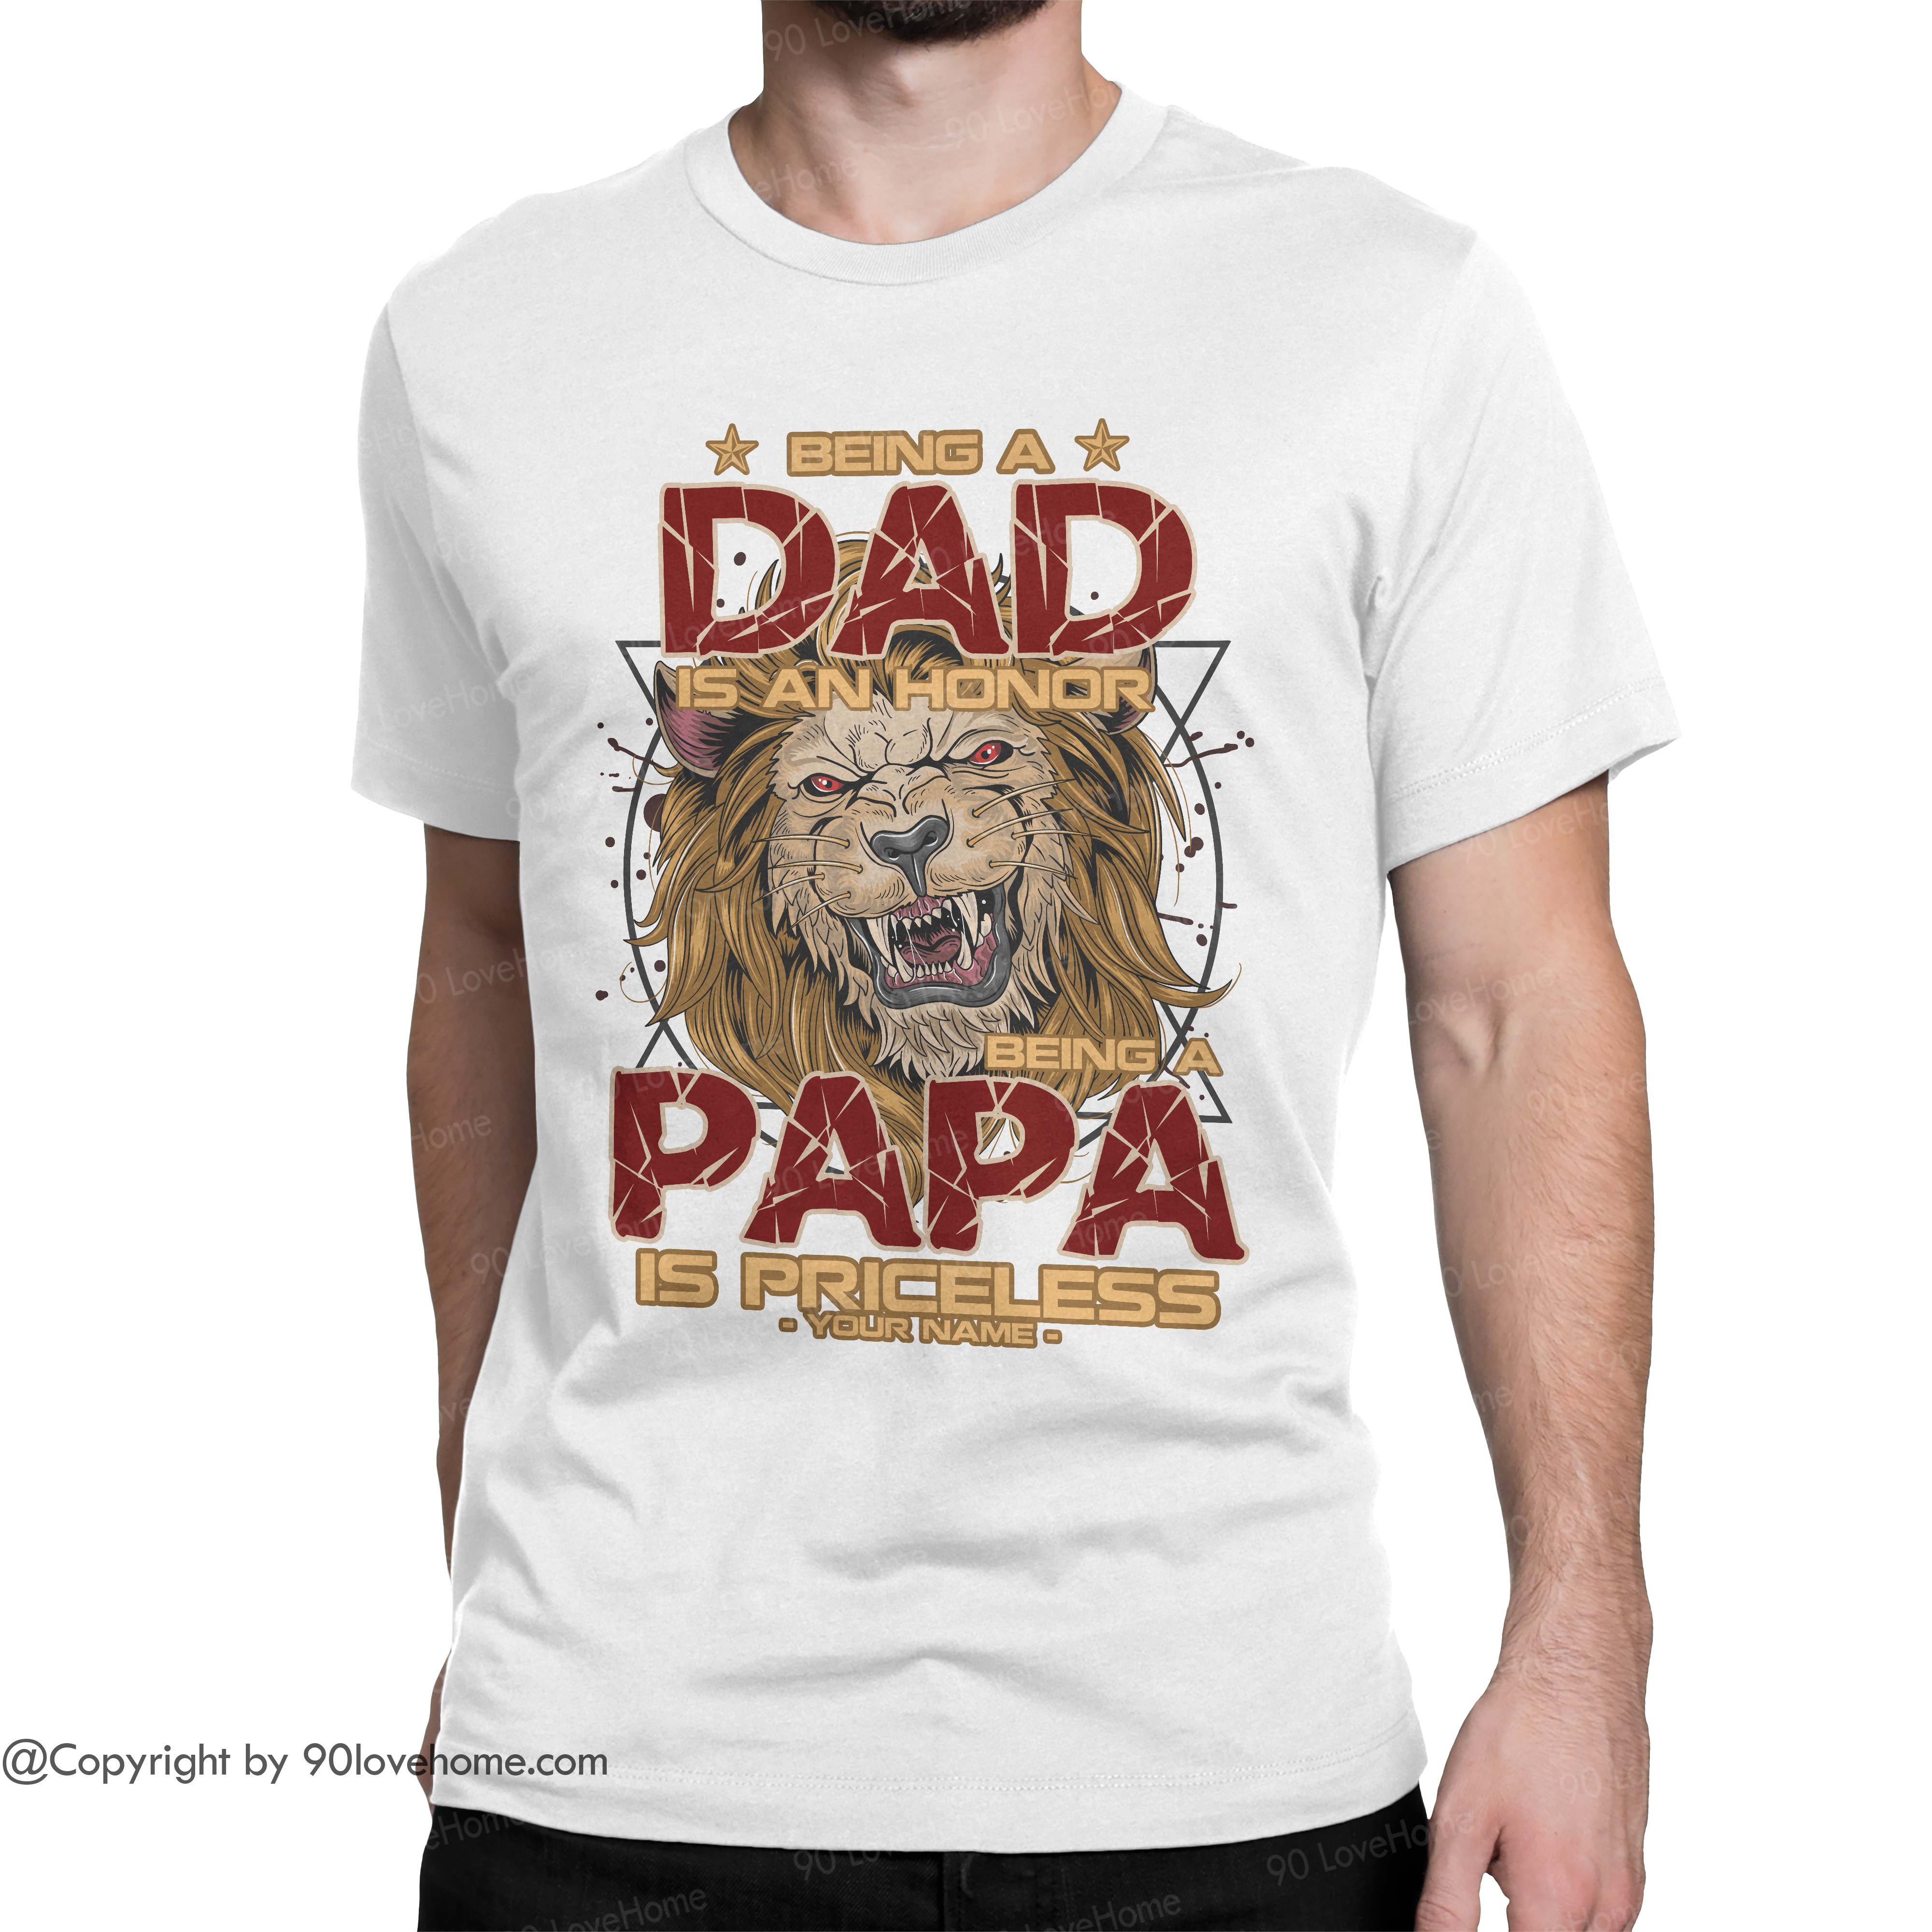 Customized Being A Dad Is An Honor Unisex T-shirt Funny Dad Quote Tee Father's Day Birthday Gift For Dad 90LoveHome